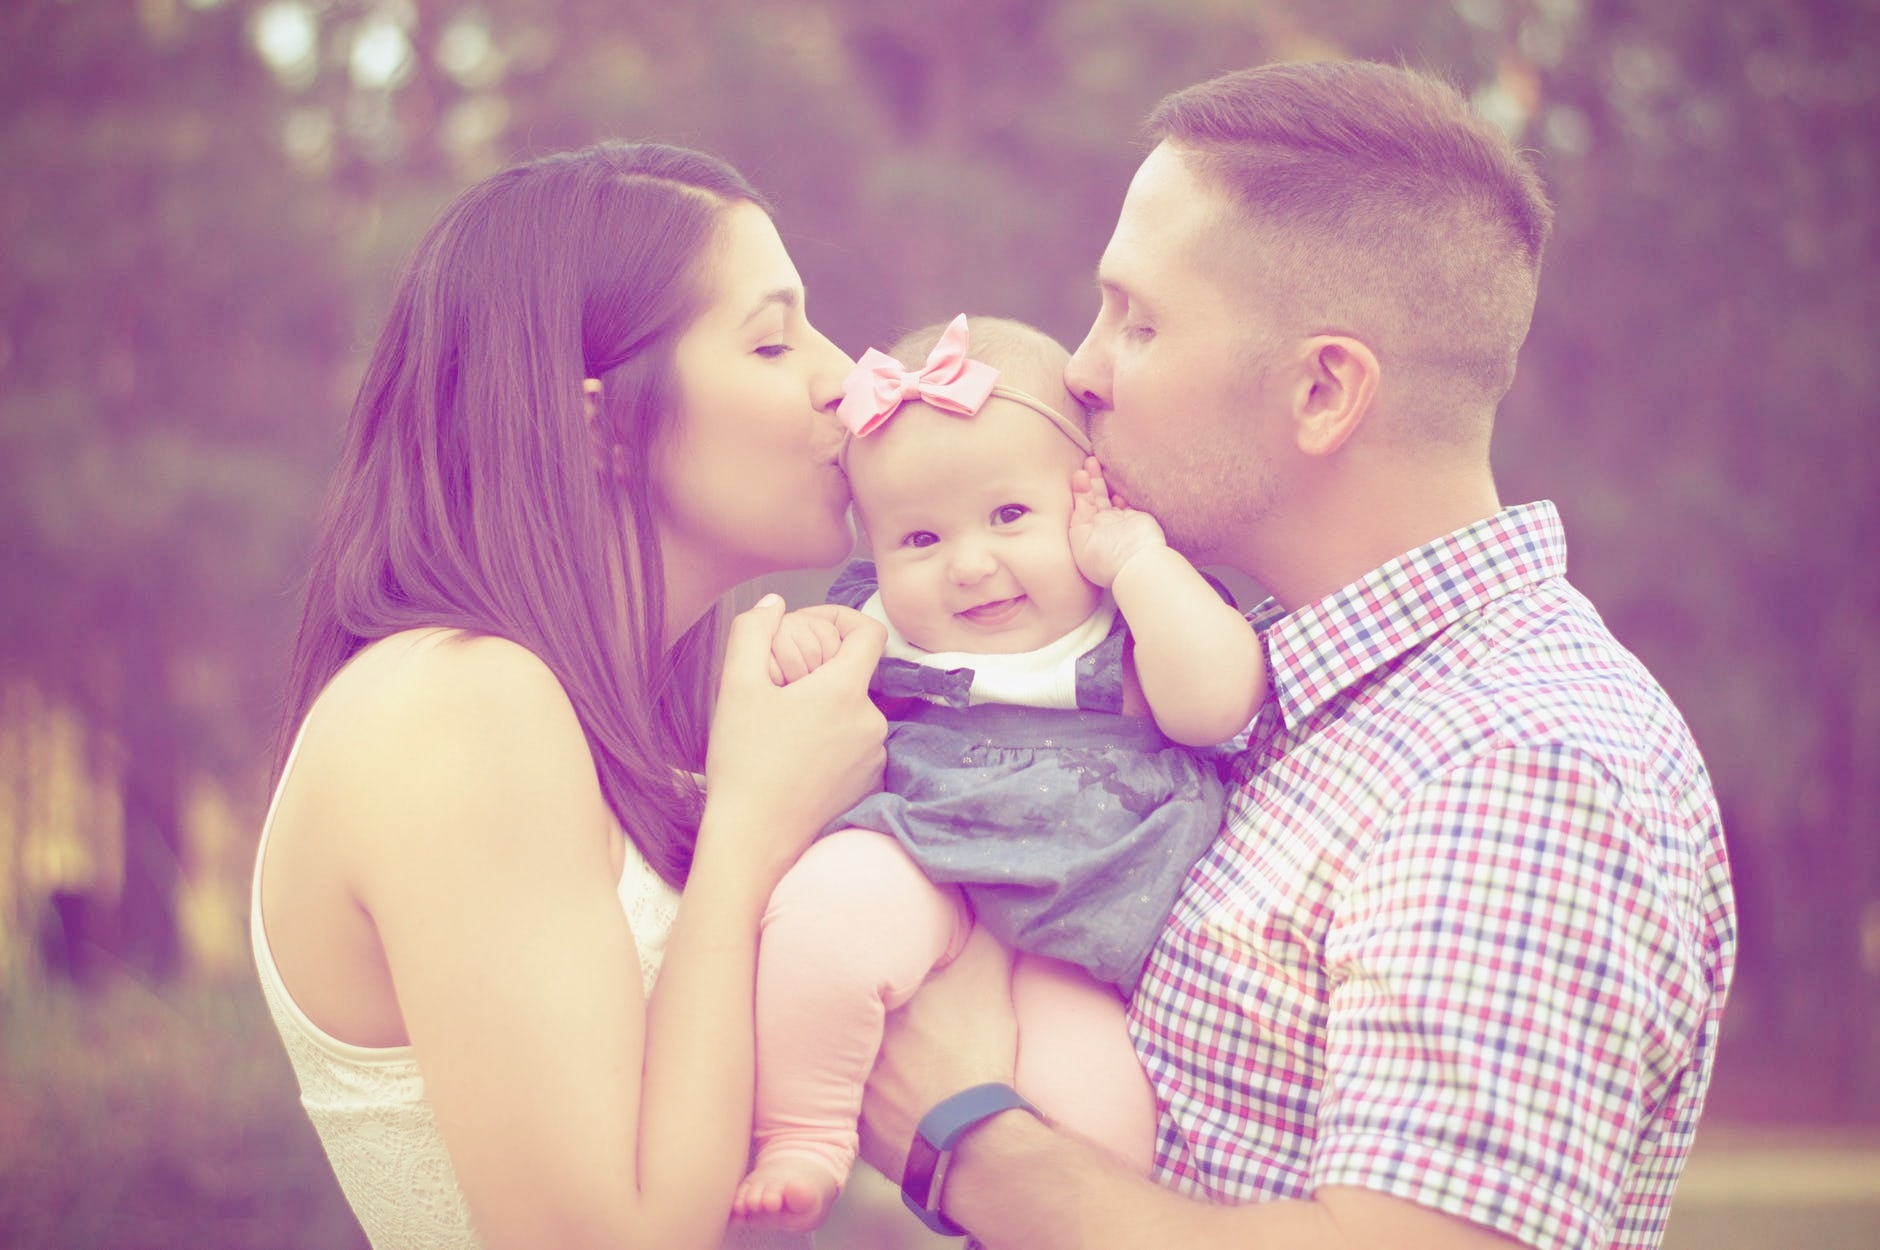 GENERATING KNOWLEDGE ABOUT FAMILIES -